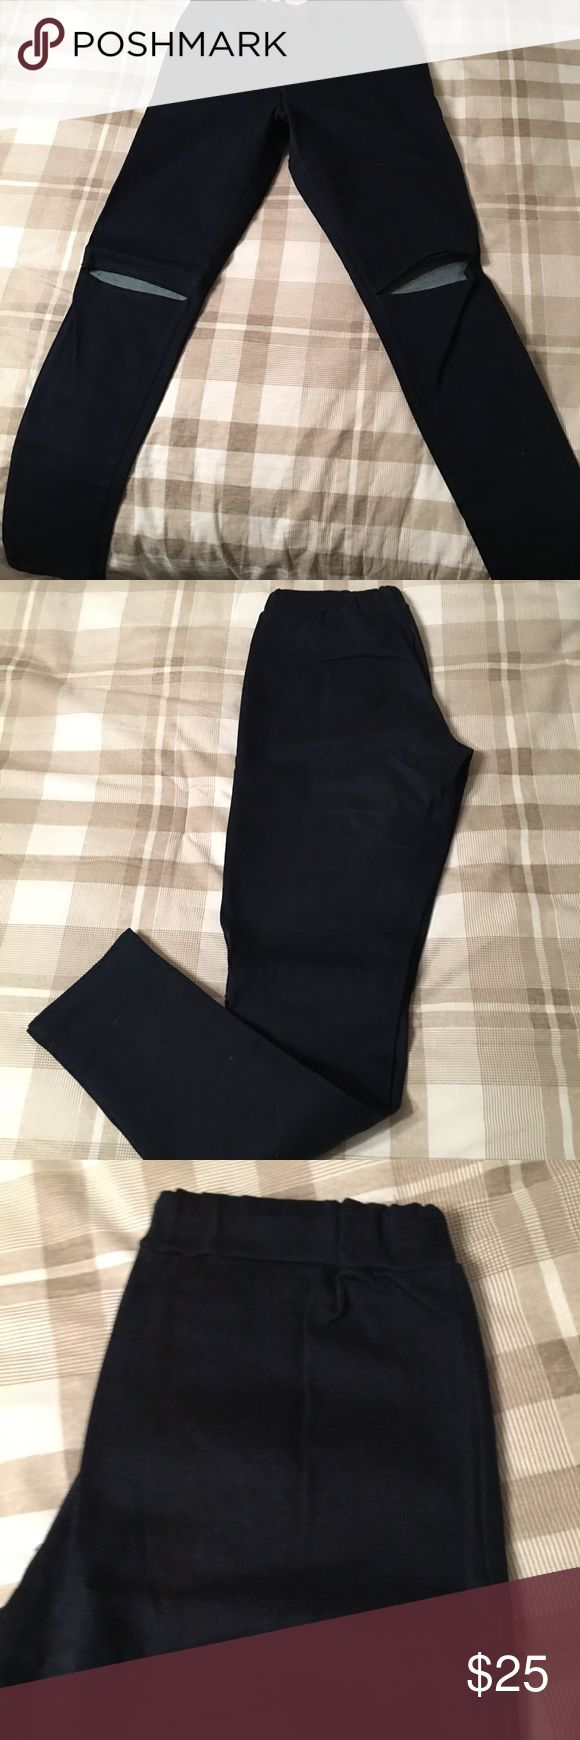 Knee cut jeans These knee cut jeans have an elastic band at the waist with no button or zipper like usual jeans. Thinner jean fabric and a darker wash jean vanilla sky Pants Skinny